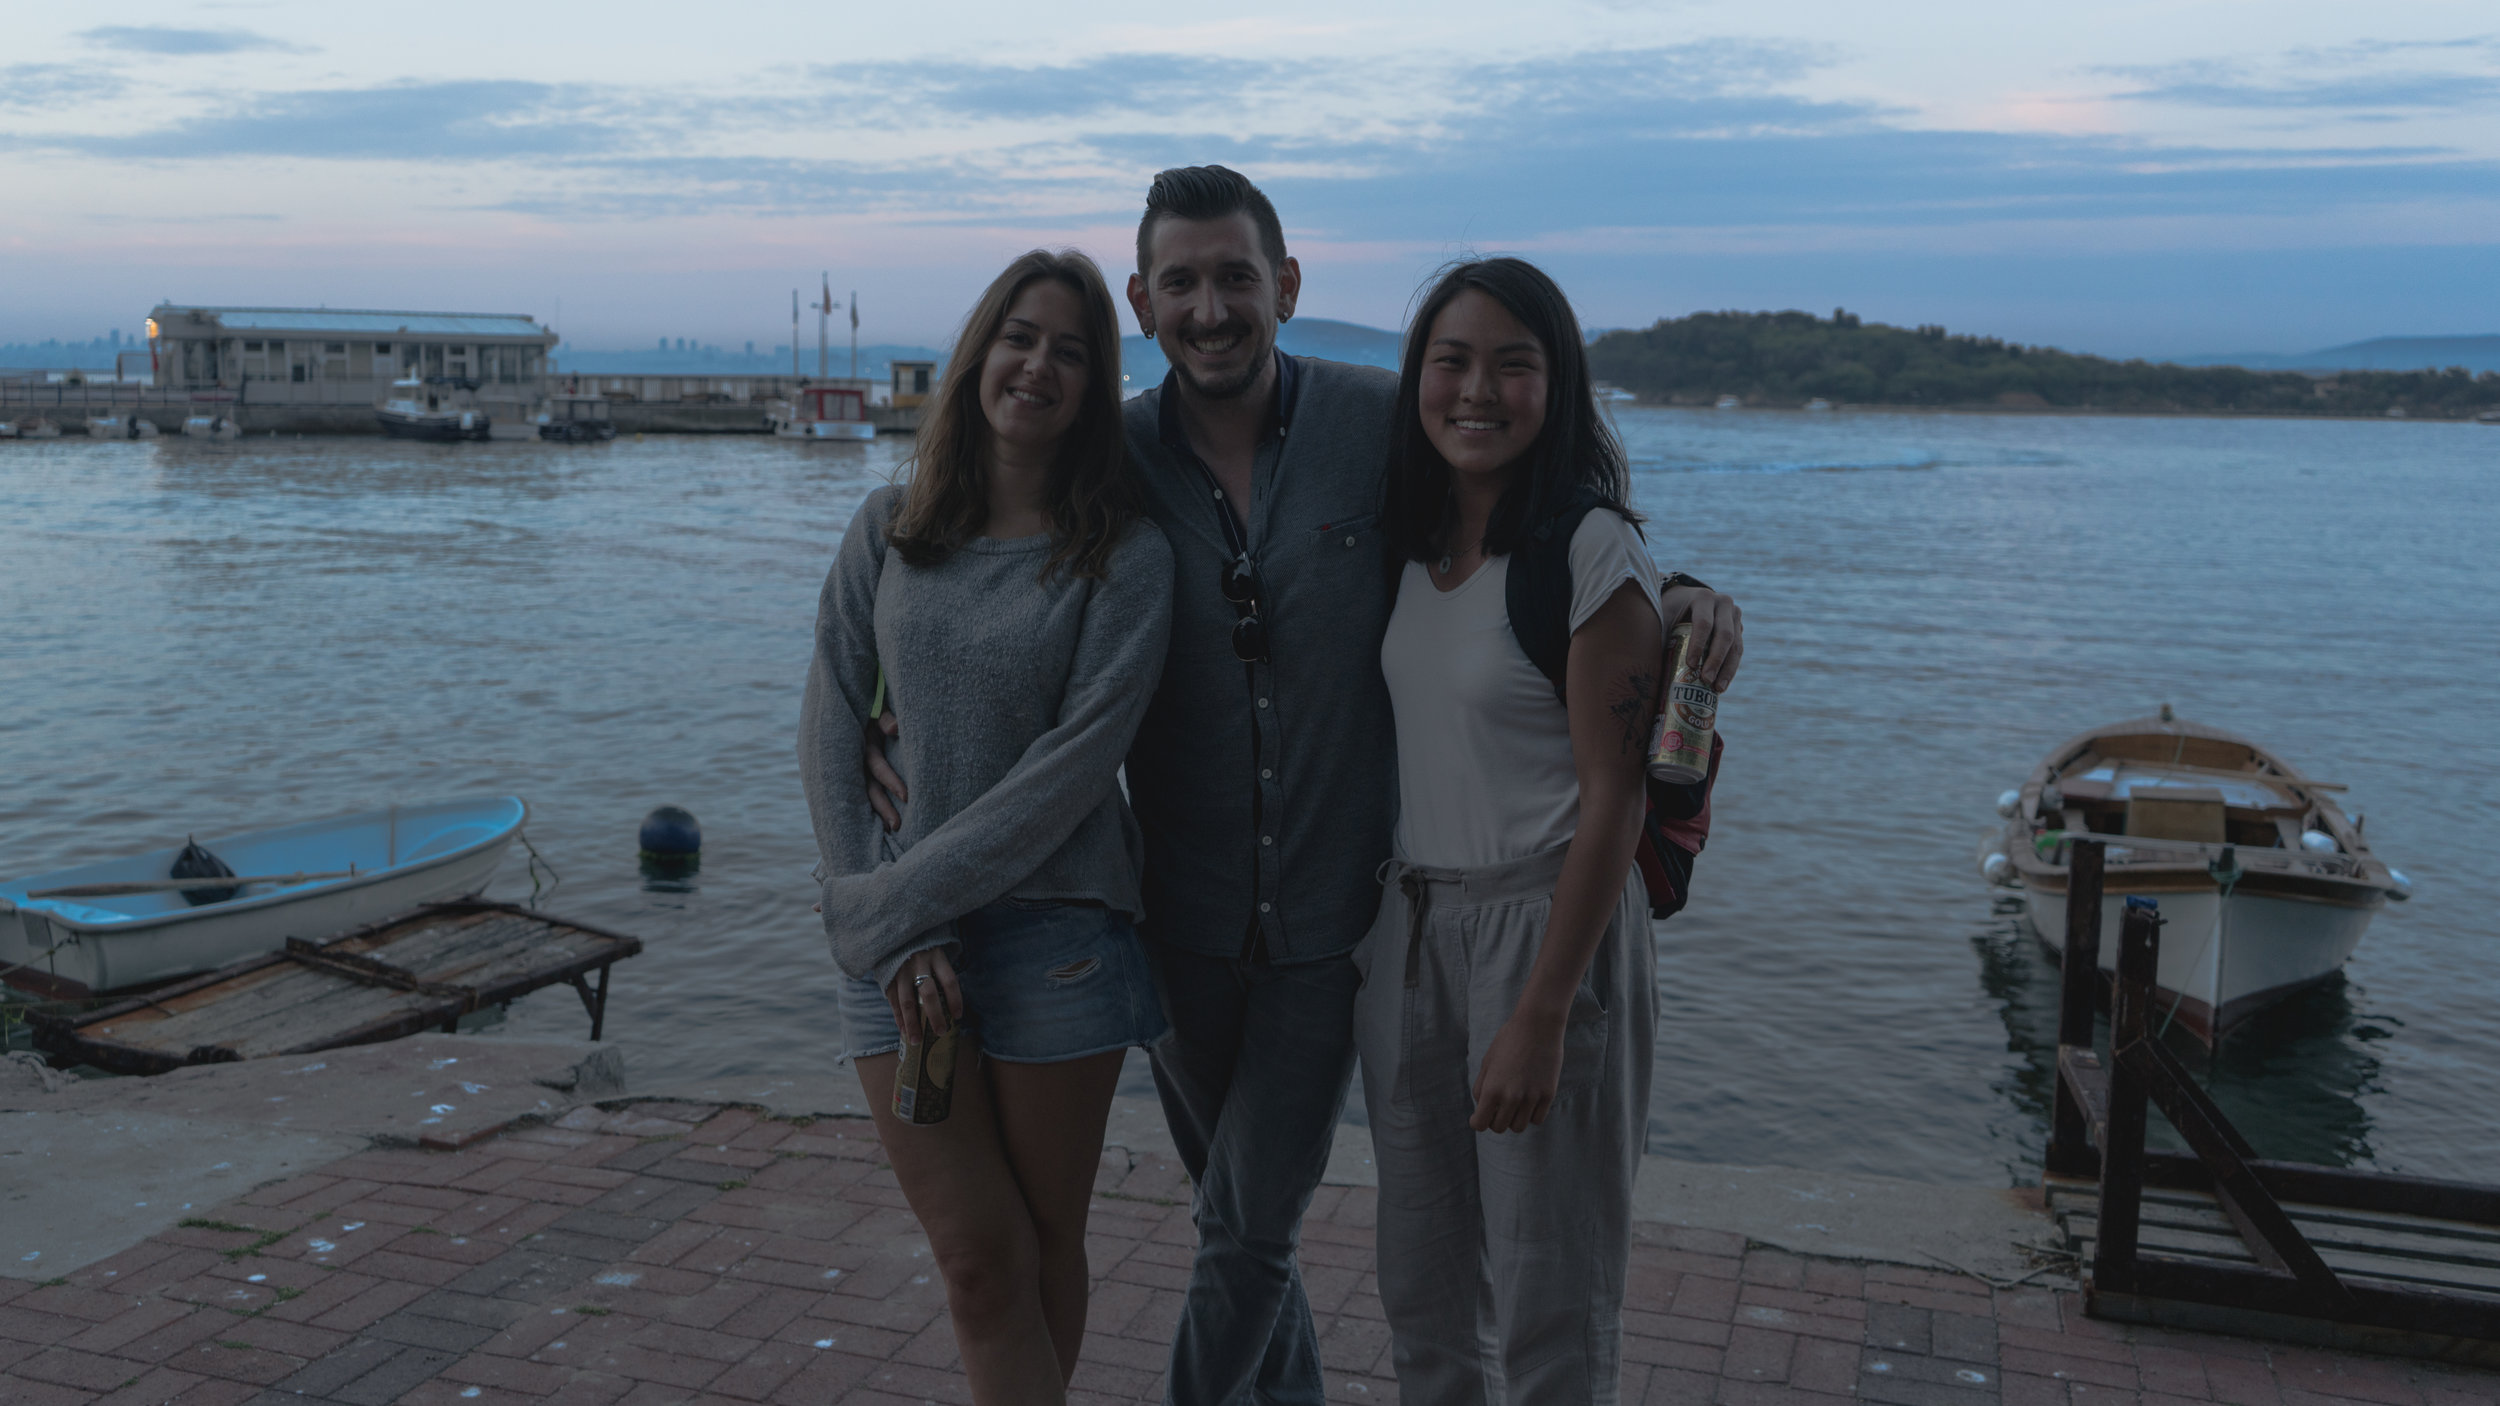 My CS host Ekin and her boyfriend- thankful they were able to host me during my last few days in Istanbul and bring me around local spots.